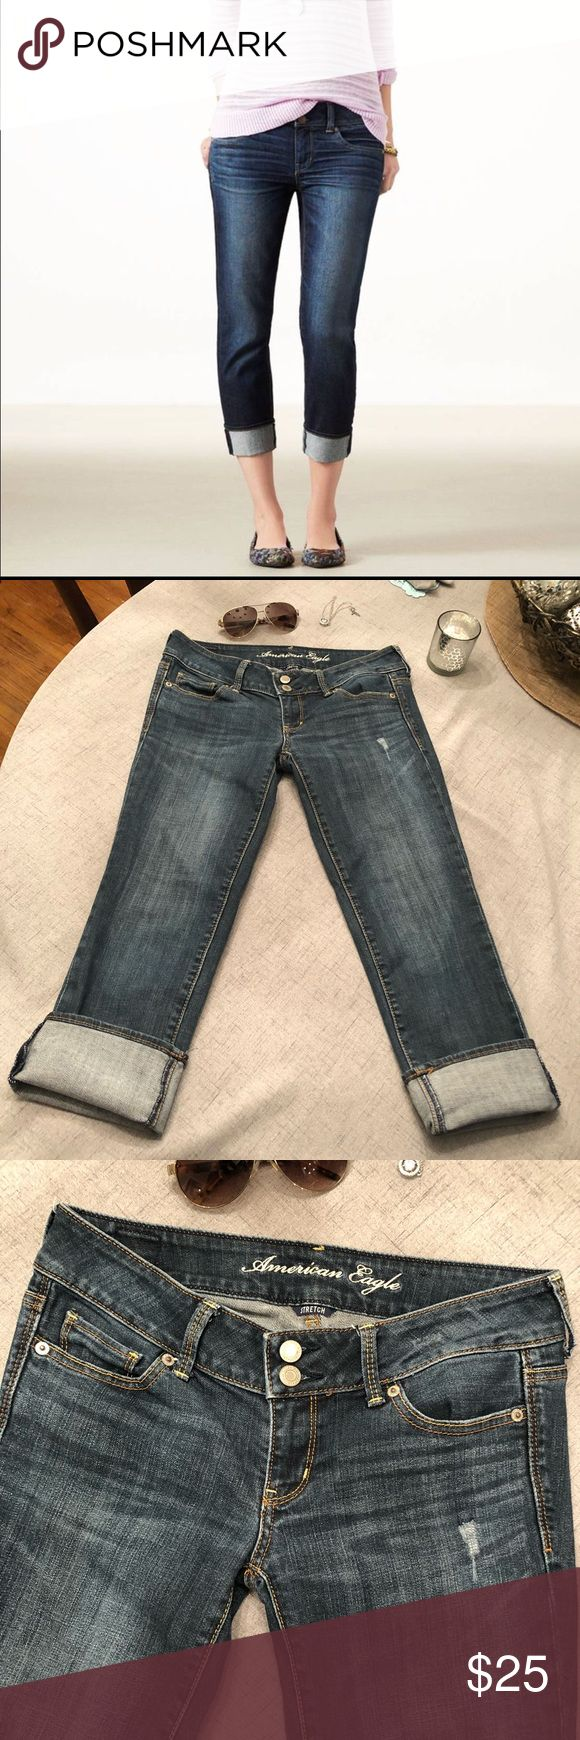 American Eagle Artist Crop Jean Capris Denim American Eagle Artist Capris, can be worn cuffed or straight. Size 4, stretchy, in perfect shape.  Happy to bundle, I will promptly answer any questions :) Follow me to see new items.   Clean, non smoking home. American Eagle Outfitters Jeans Ankle & Cropped